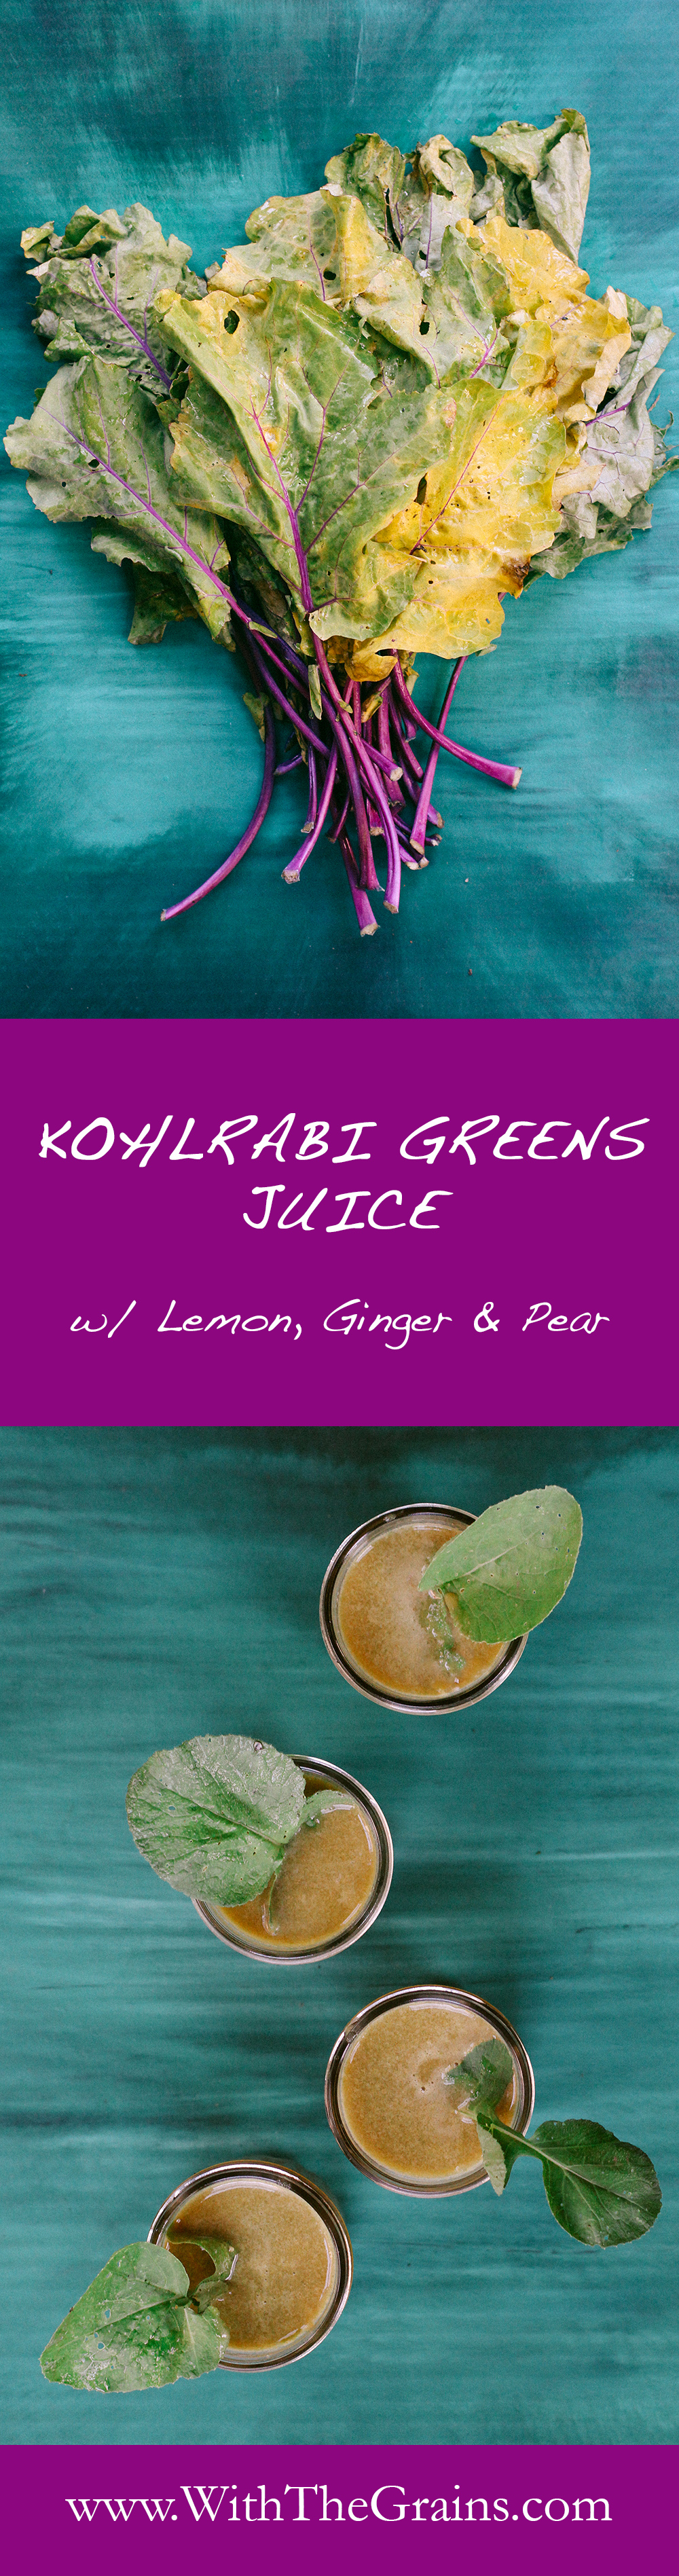 Kohlrabi Greens Juice by With The Grains 01